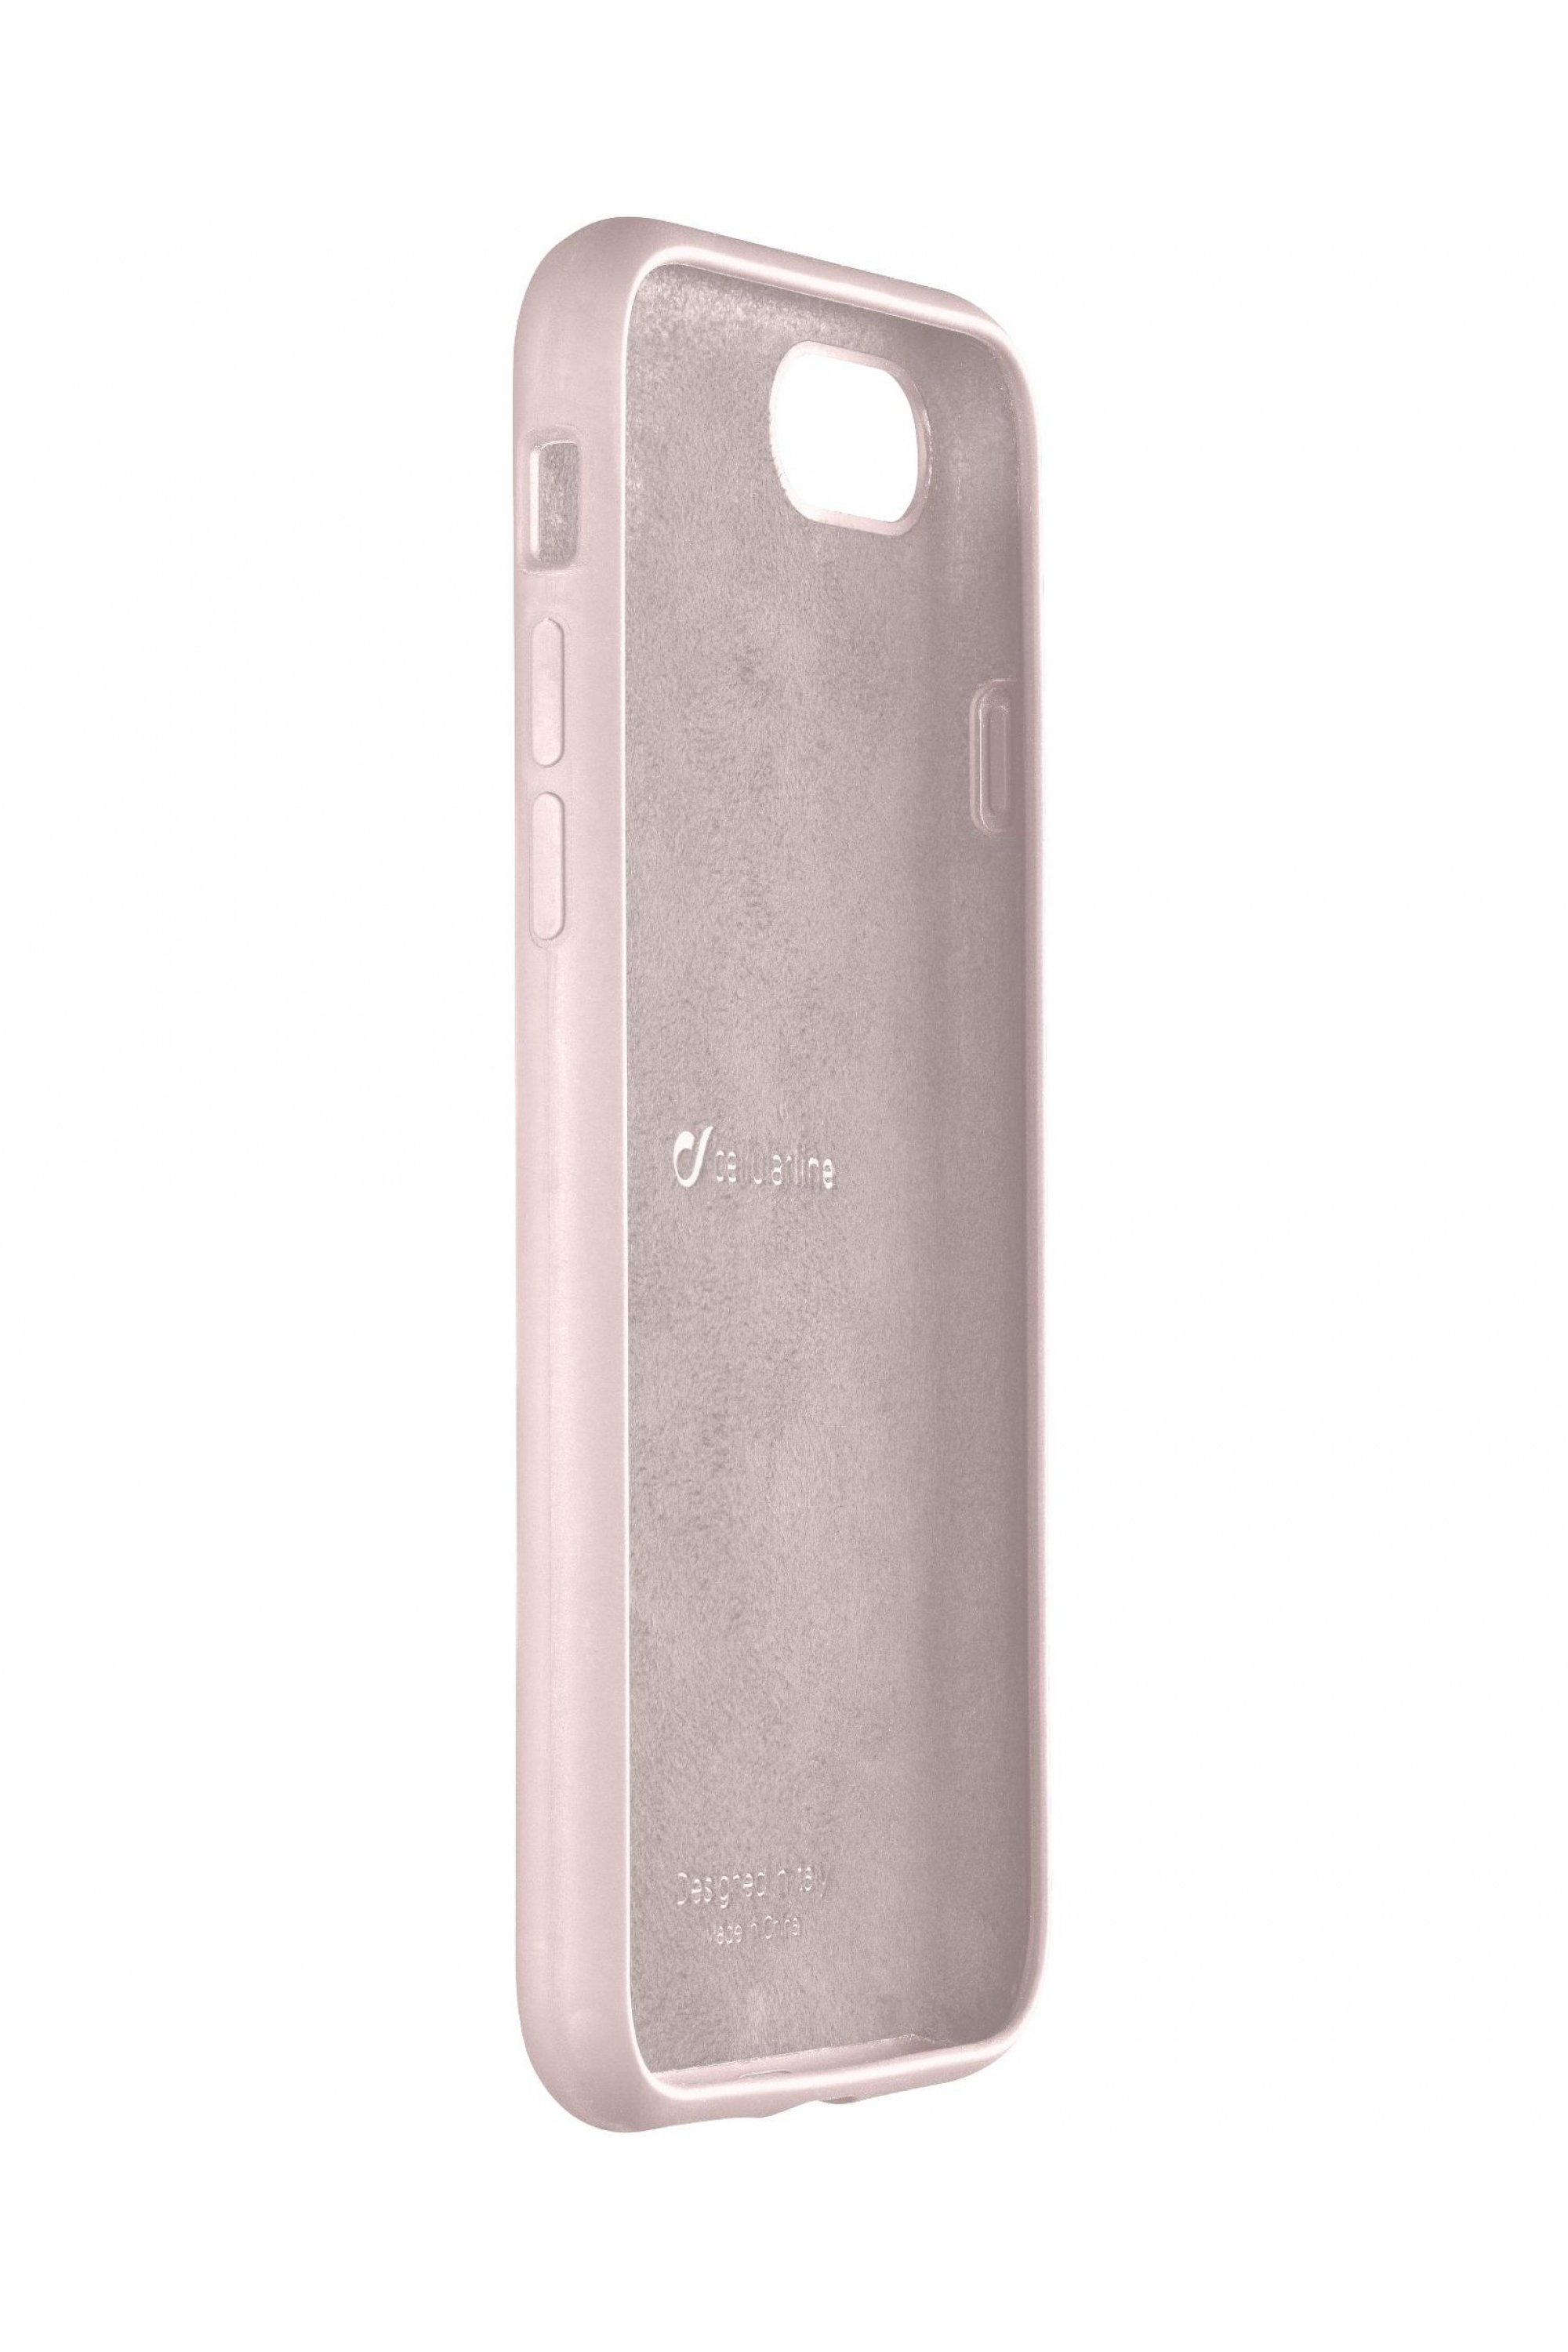 Cellular Line Custodia Protettiva Sensation iPhone 8/7/6 - Sensationiph747p